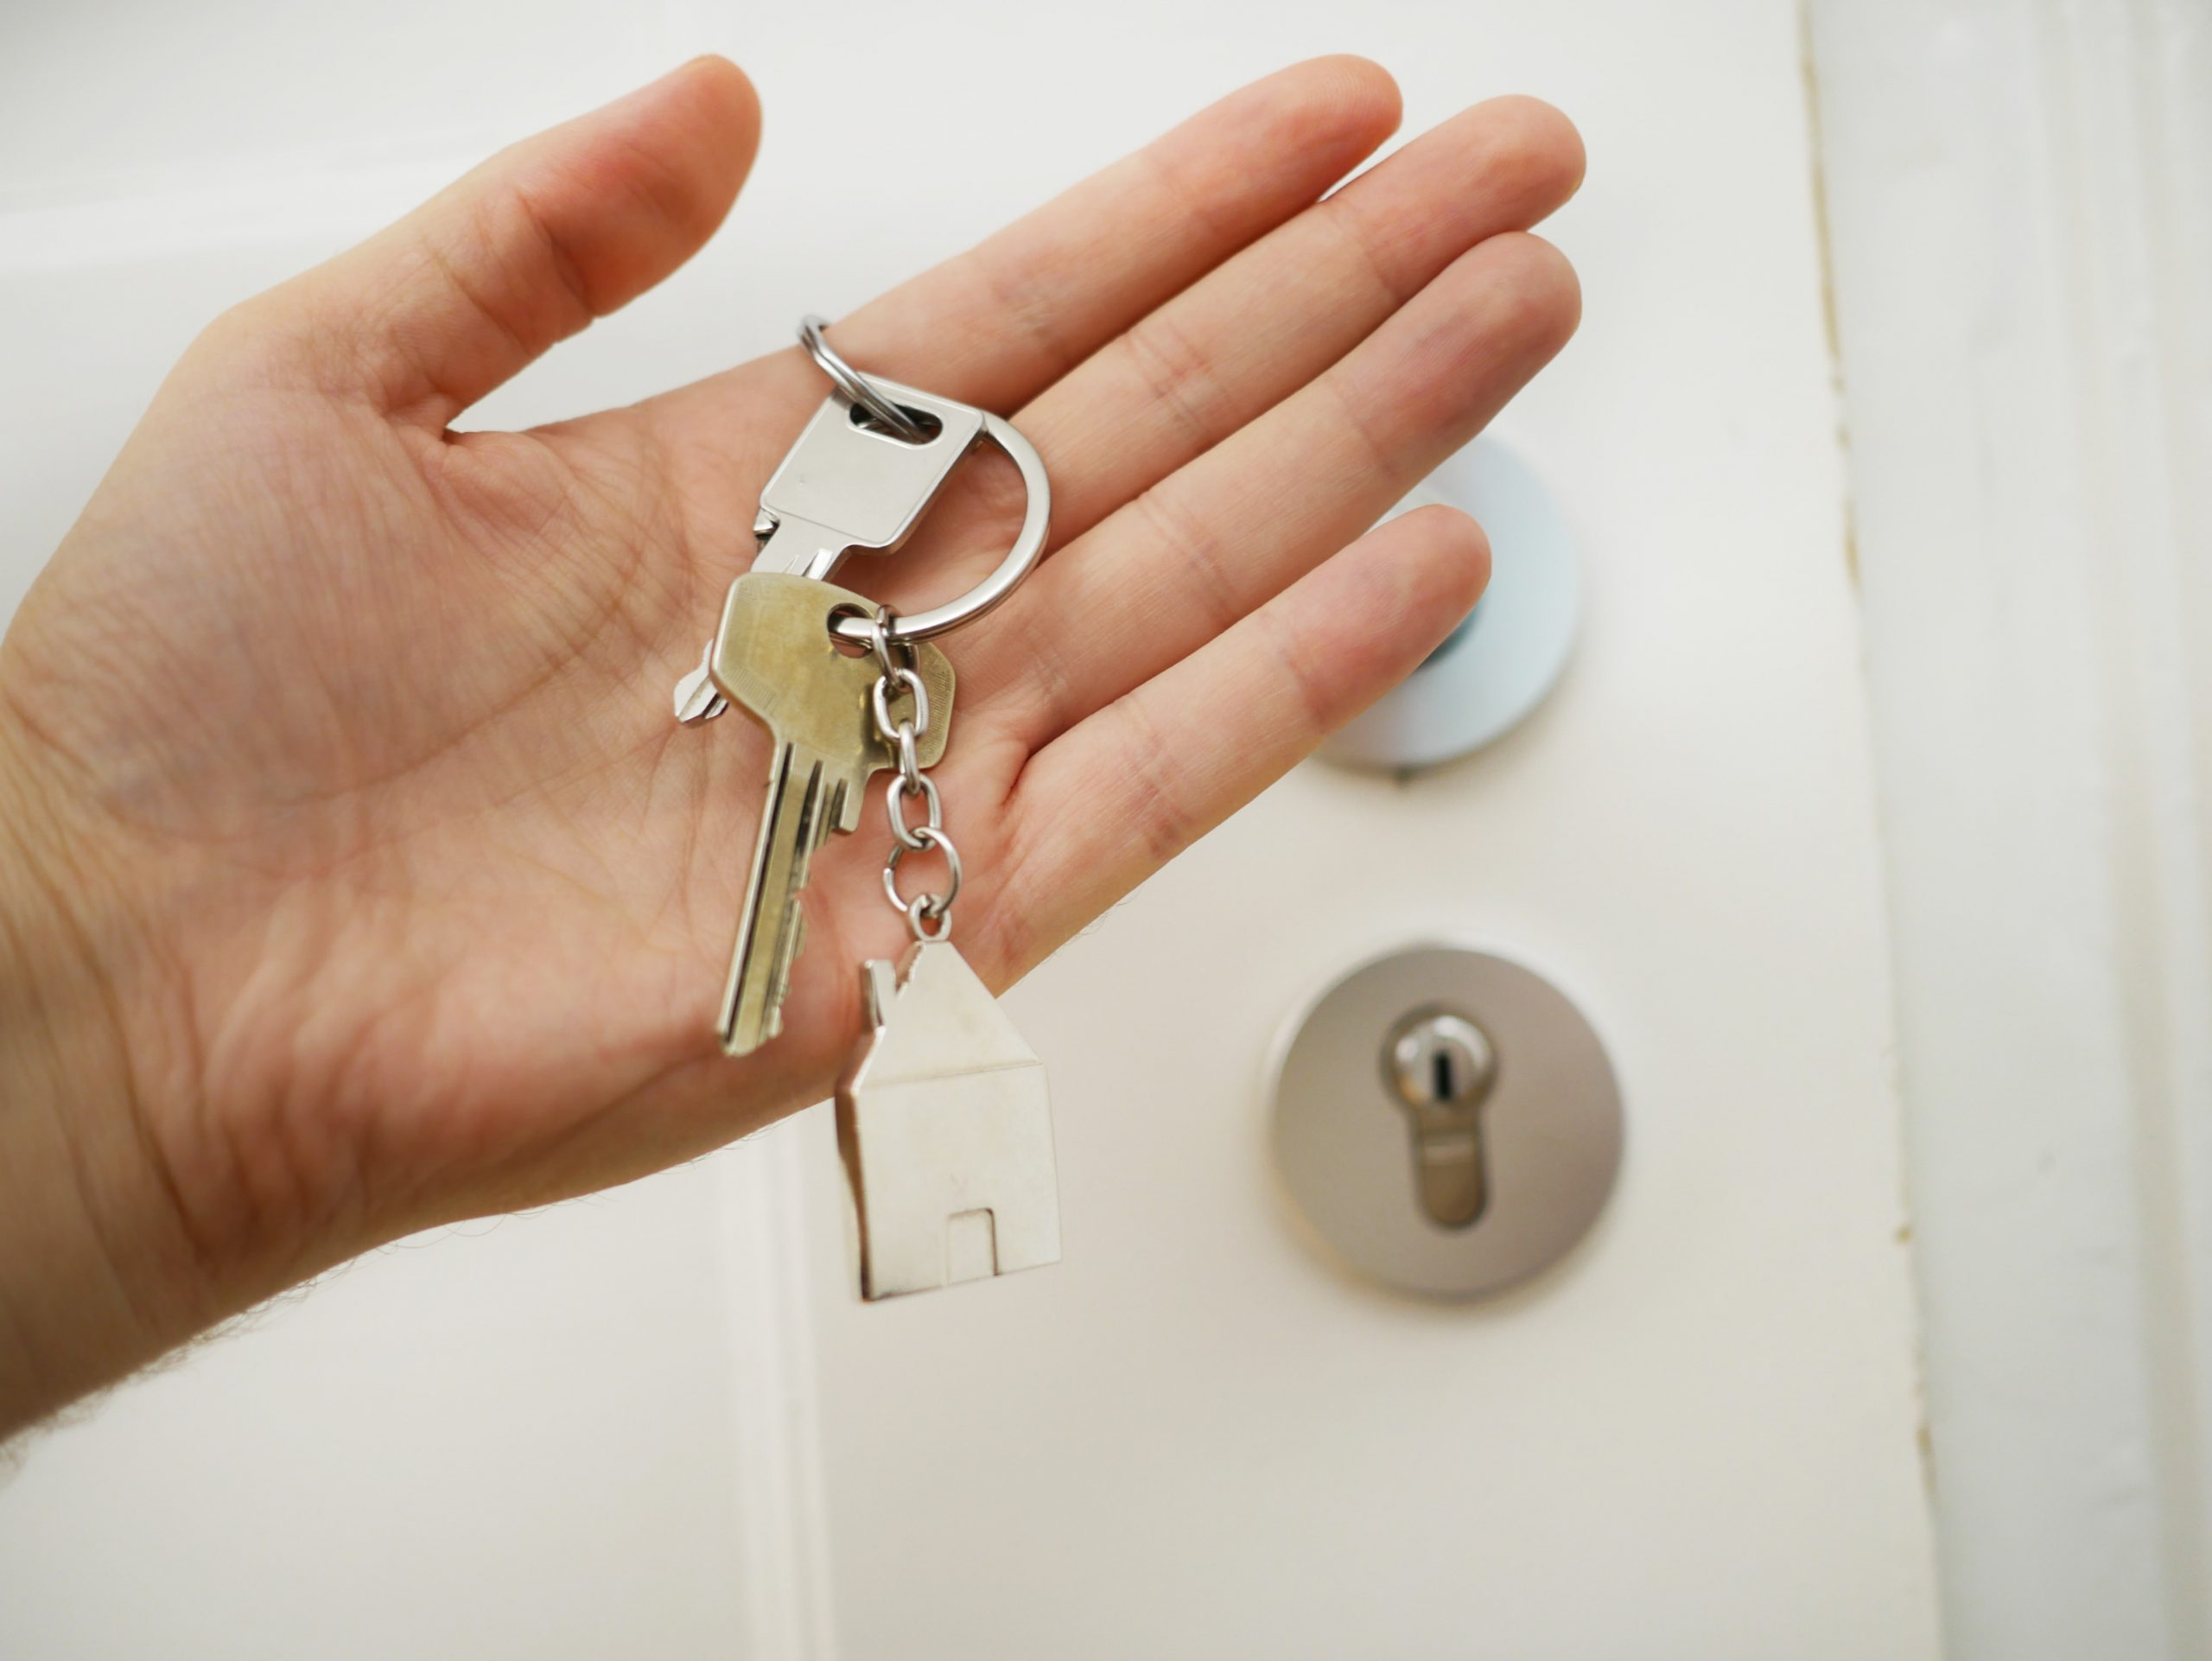 COVID-19 residential rent laws extended for six months